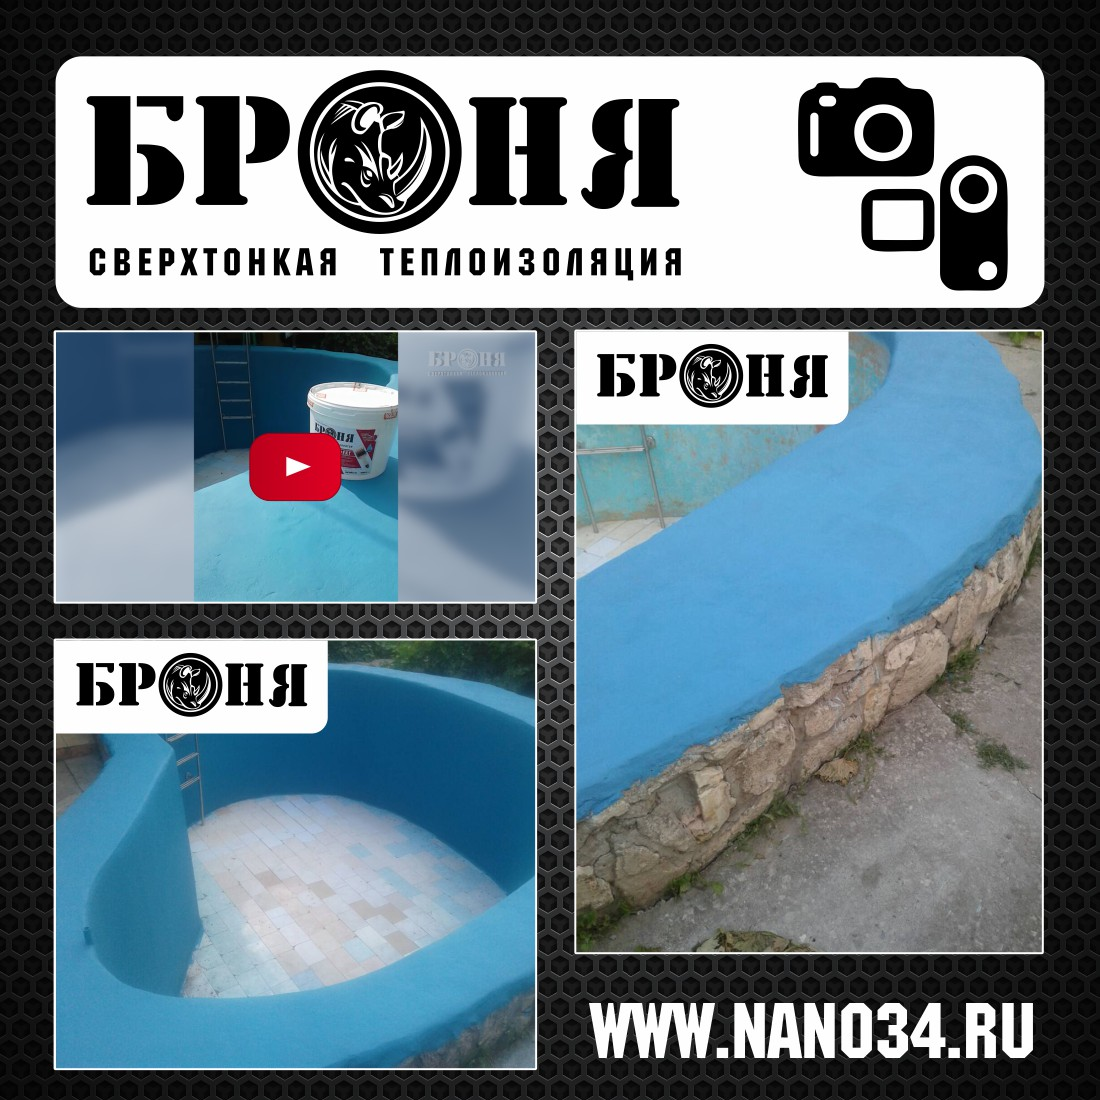 Waterproofing a pool with Armor AquaBlock in the village of Lopatino, Samara Region (photo + video)